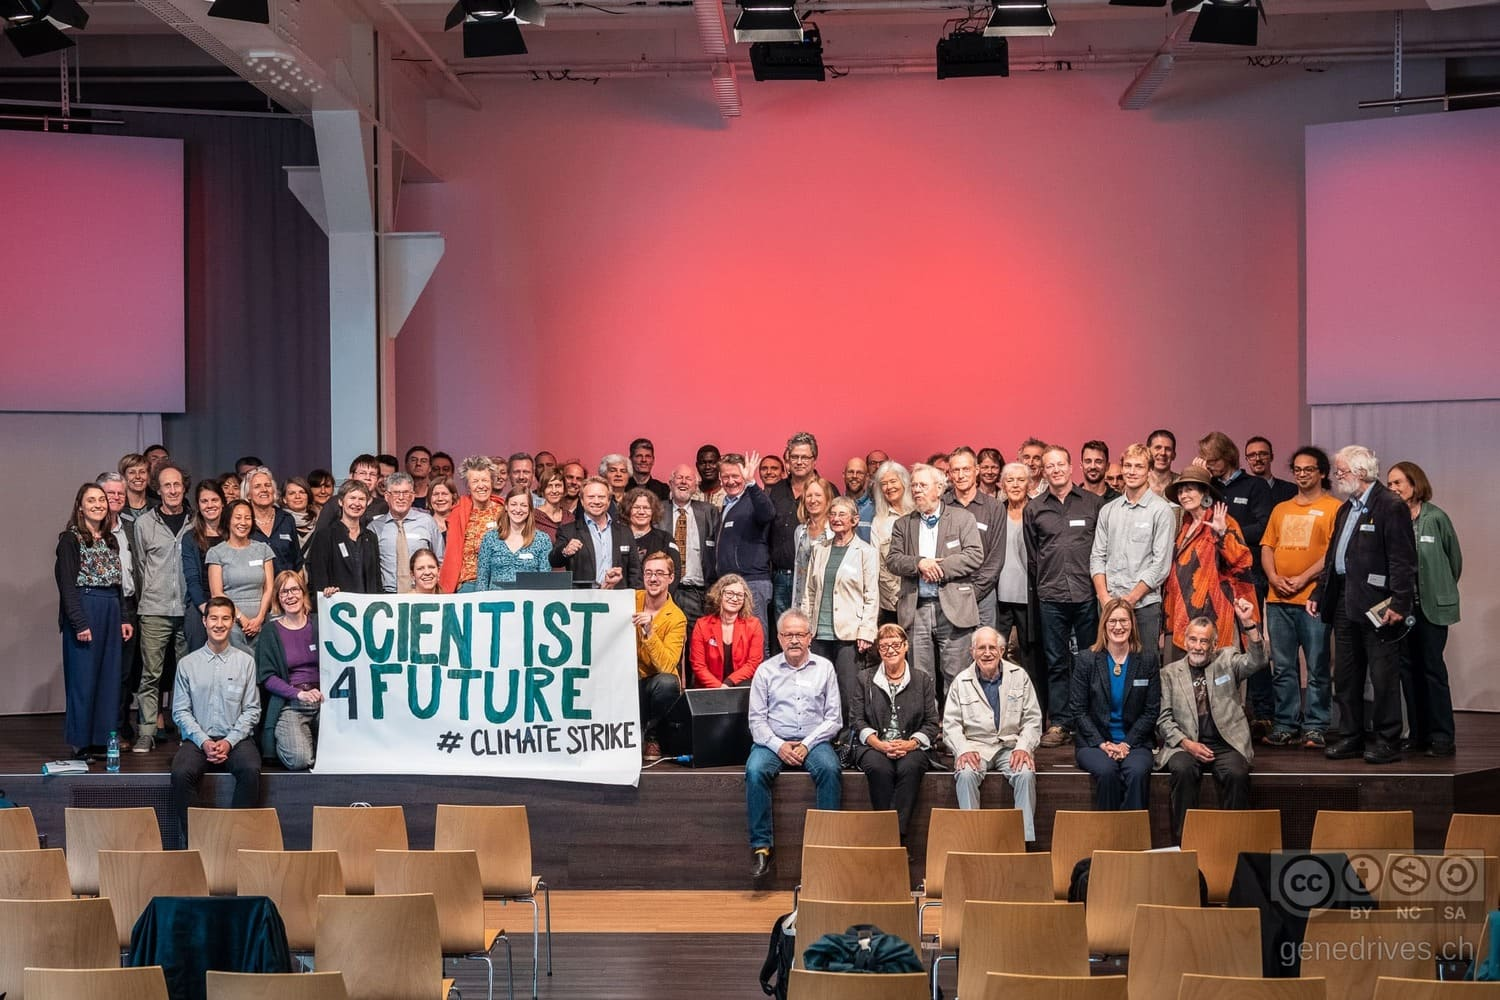 GeneDrive participants show solidarity with the Scientists4future climate strike.